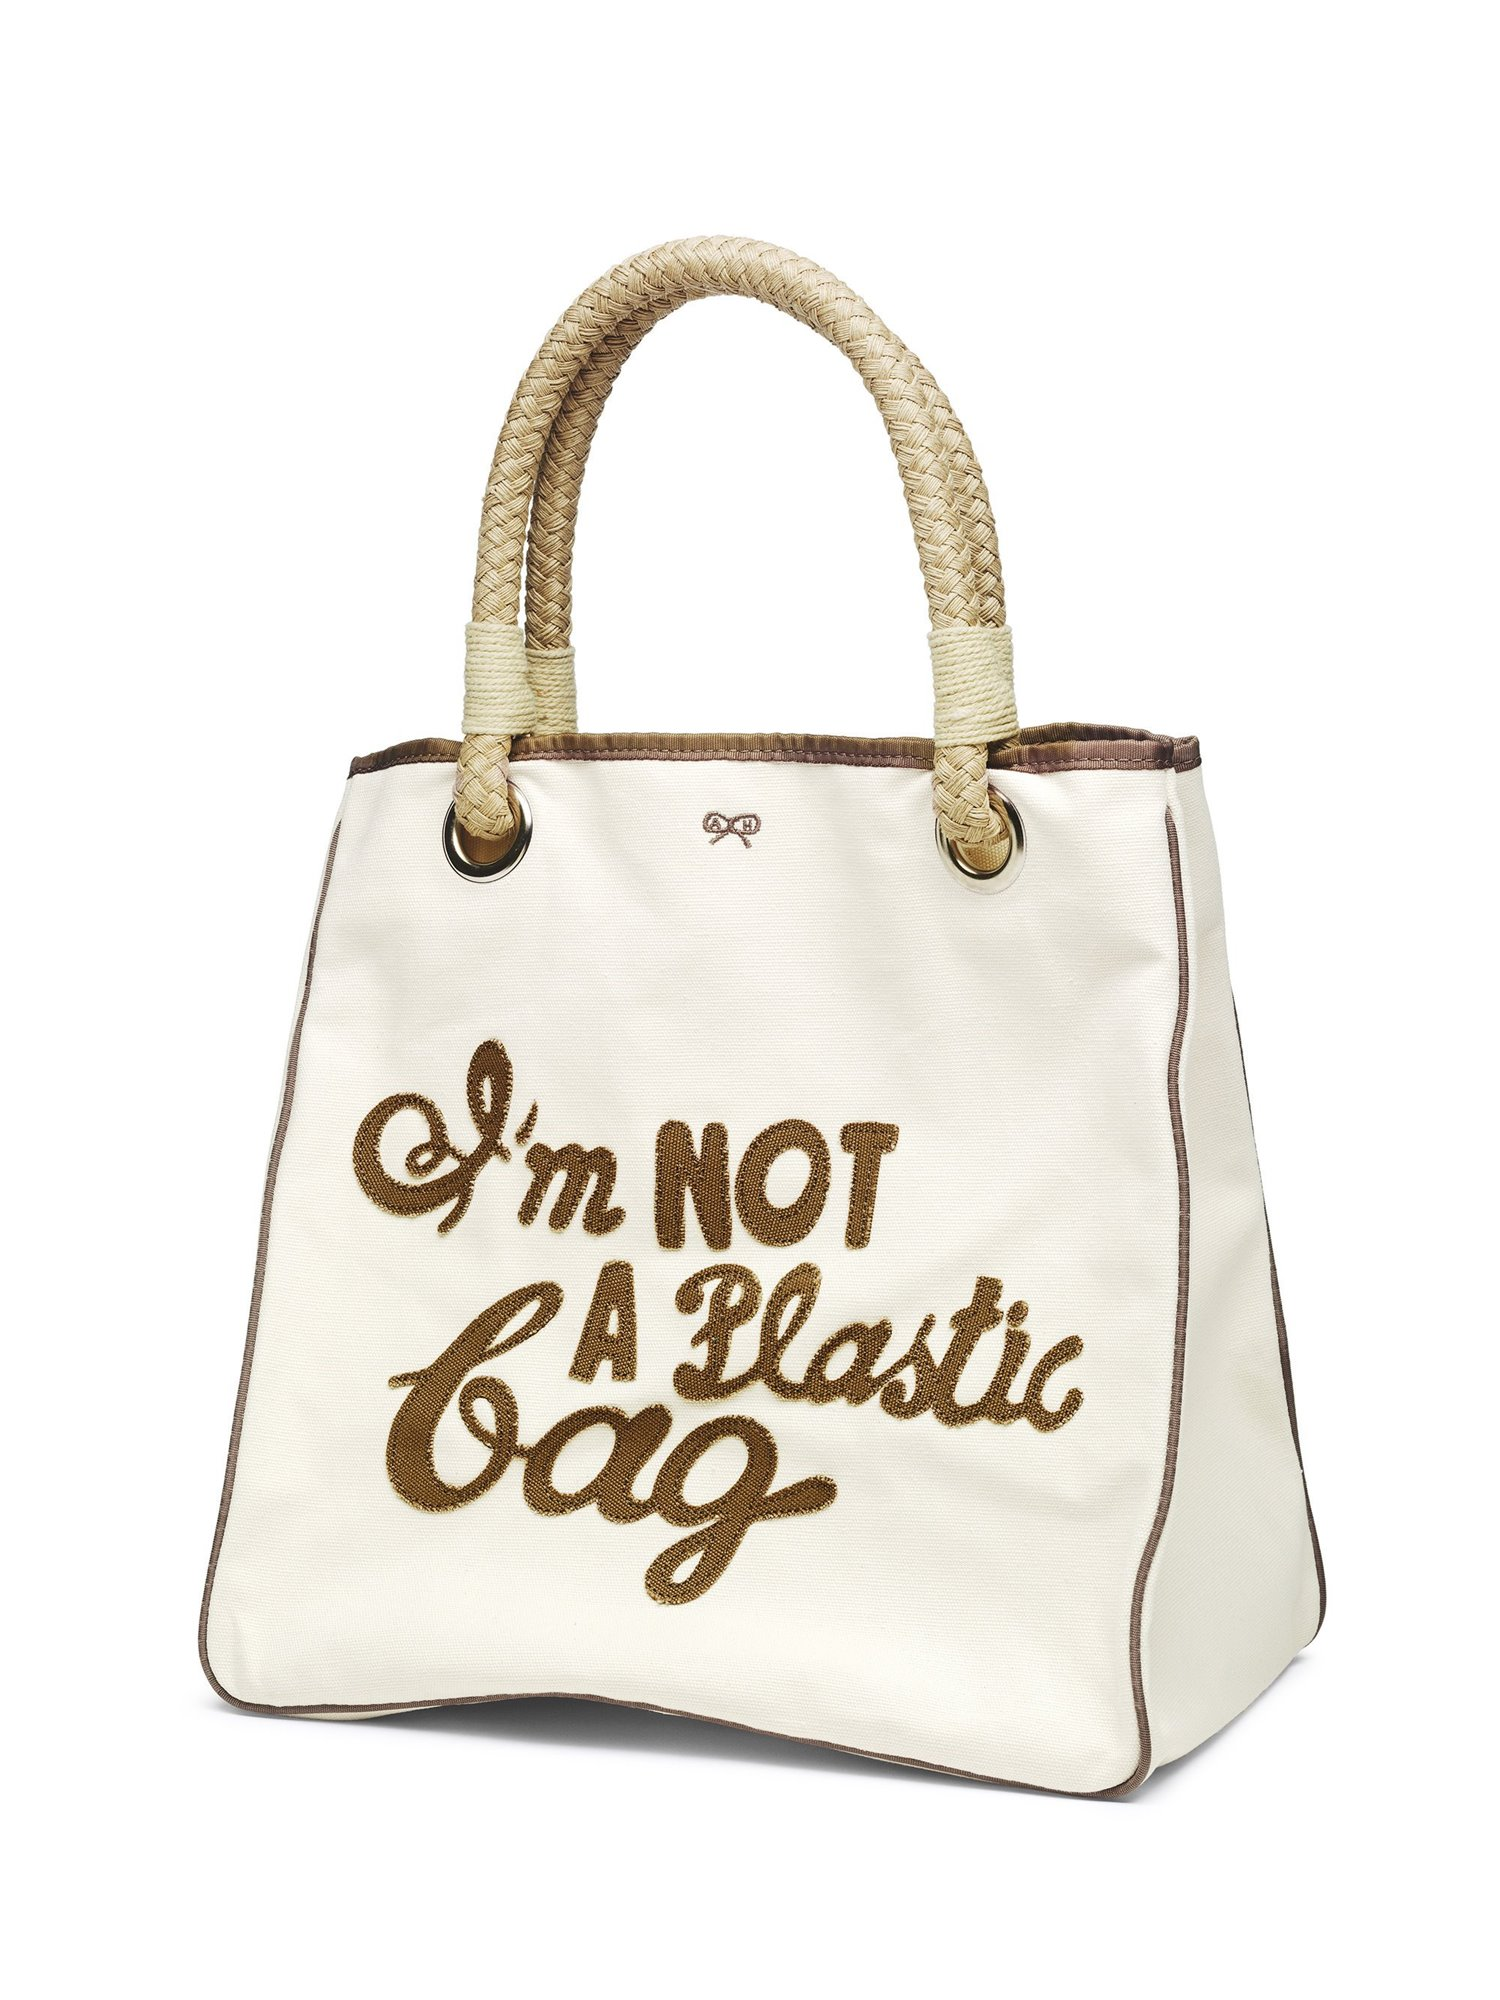 'I'm NOT a Plastic bag' tote bag